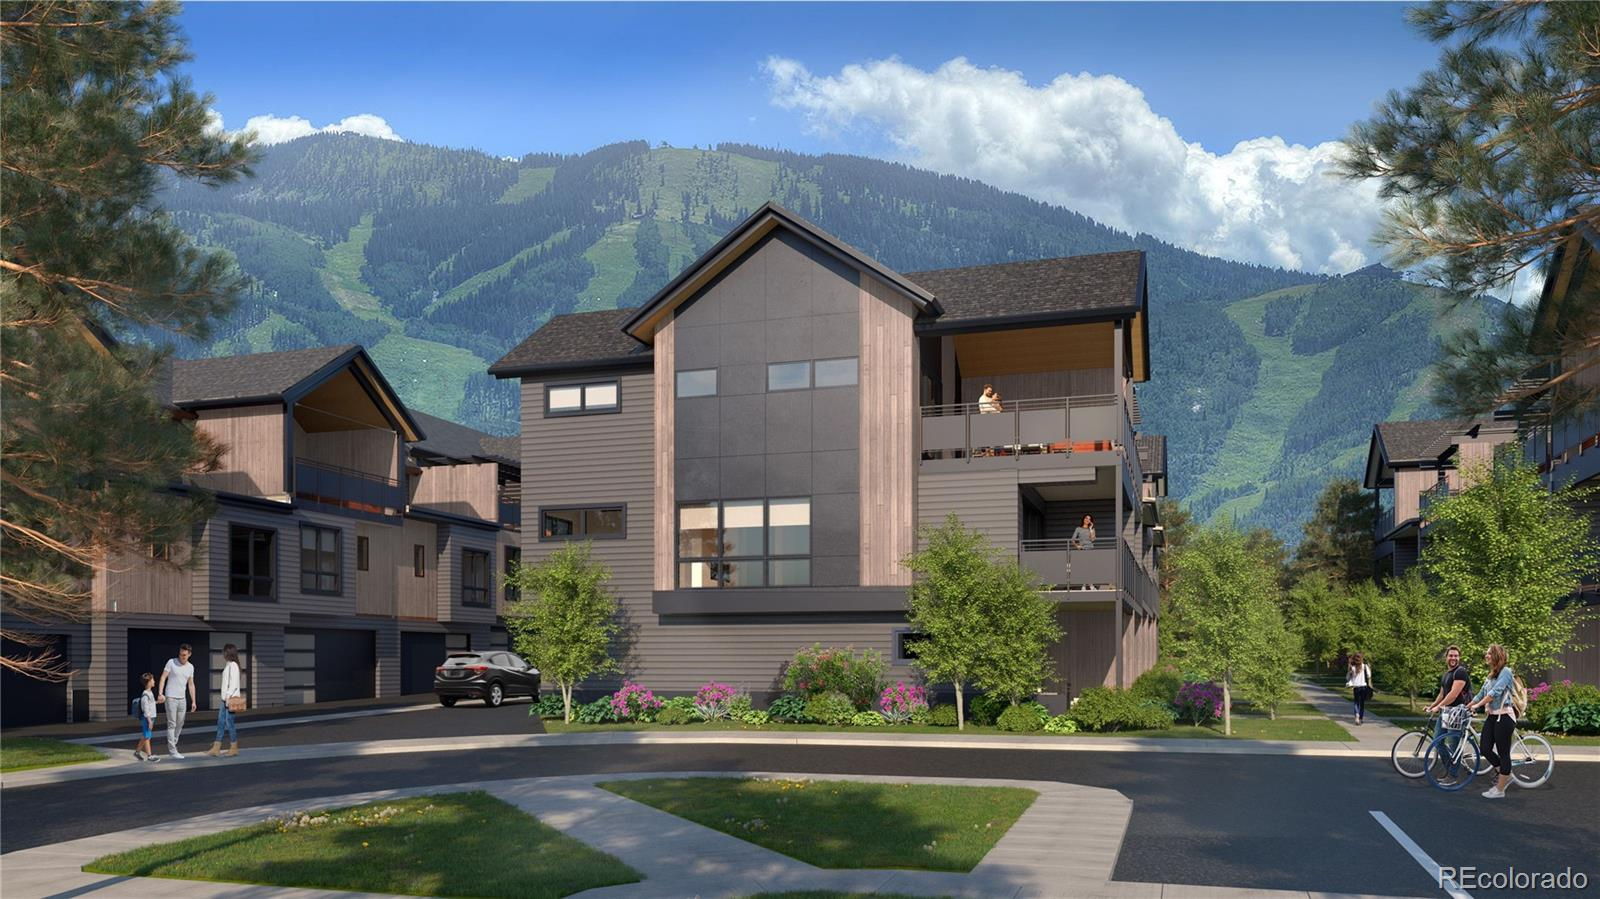 MLS# 2707087 - 2 - 2556 Cattle Kate Circle #D, Steamboat Springs, CO 80487